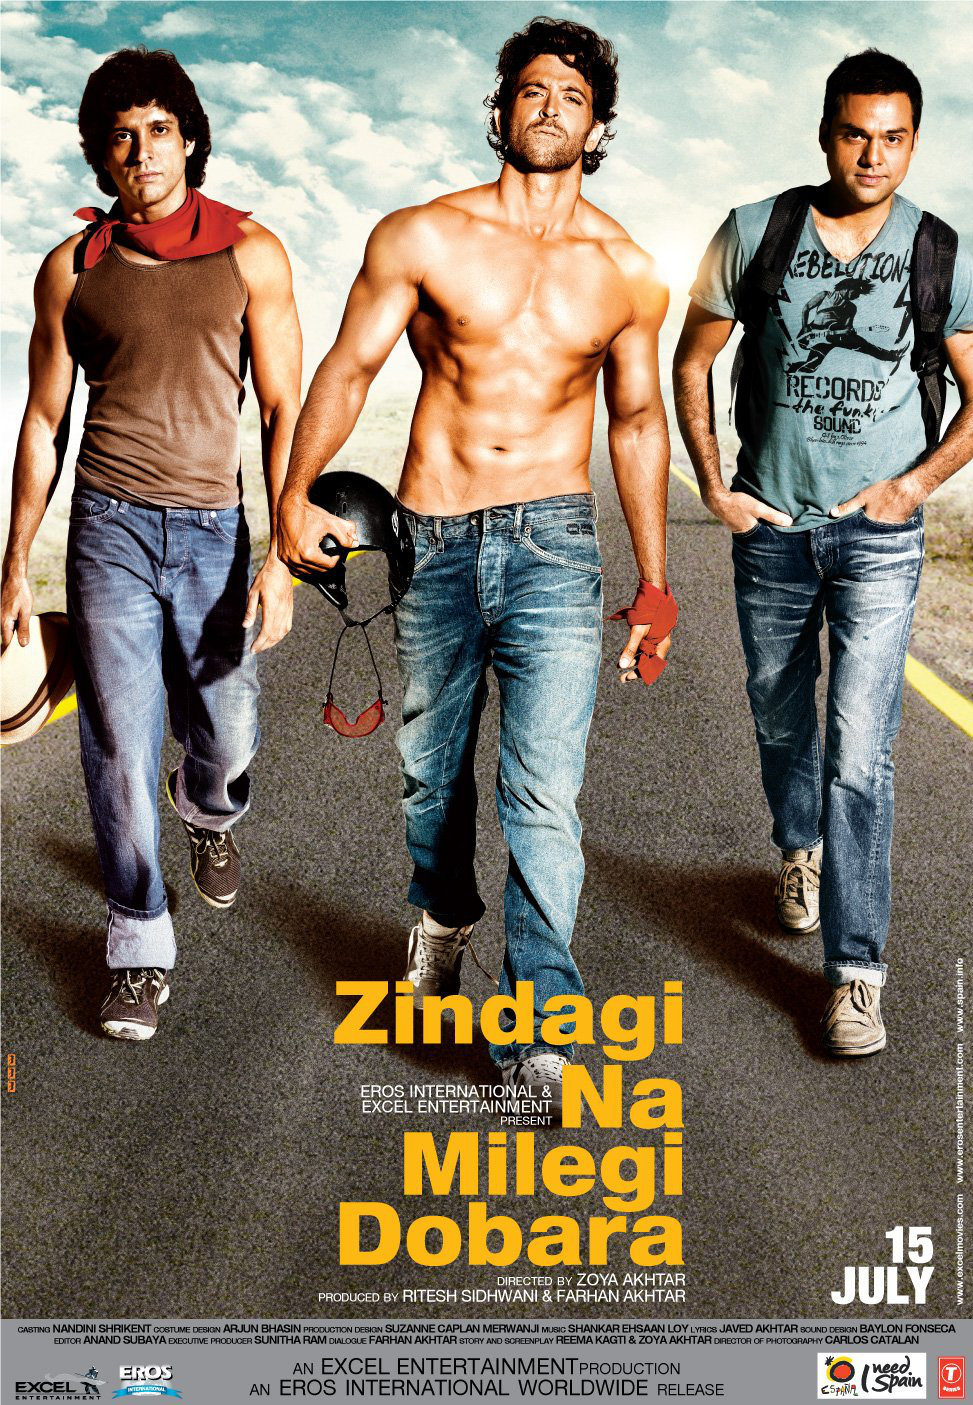 Zindagi Na Milegi Dobara Movie Dialogues Poster Ft. Farhan Akhtar, Hrithik Roshan, Abhay Deol - Full HD Wallpaper